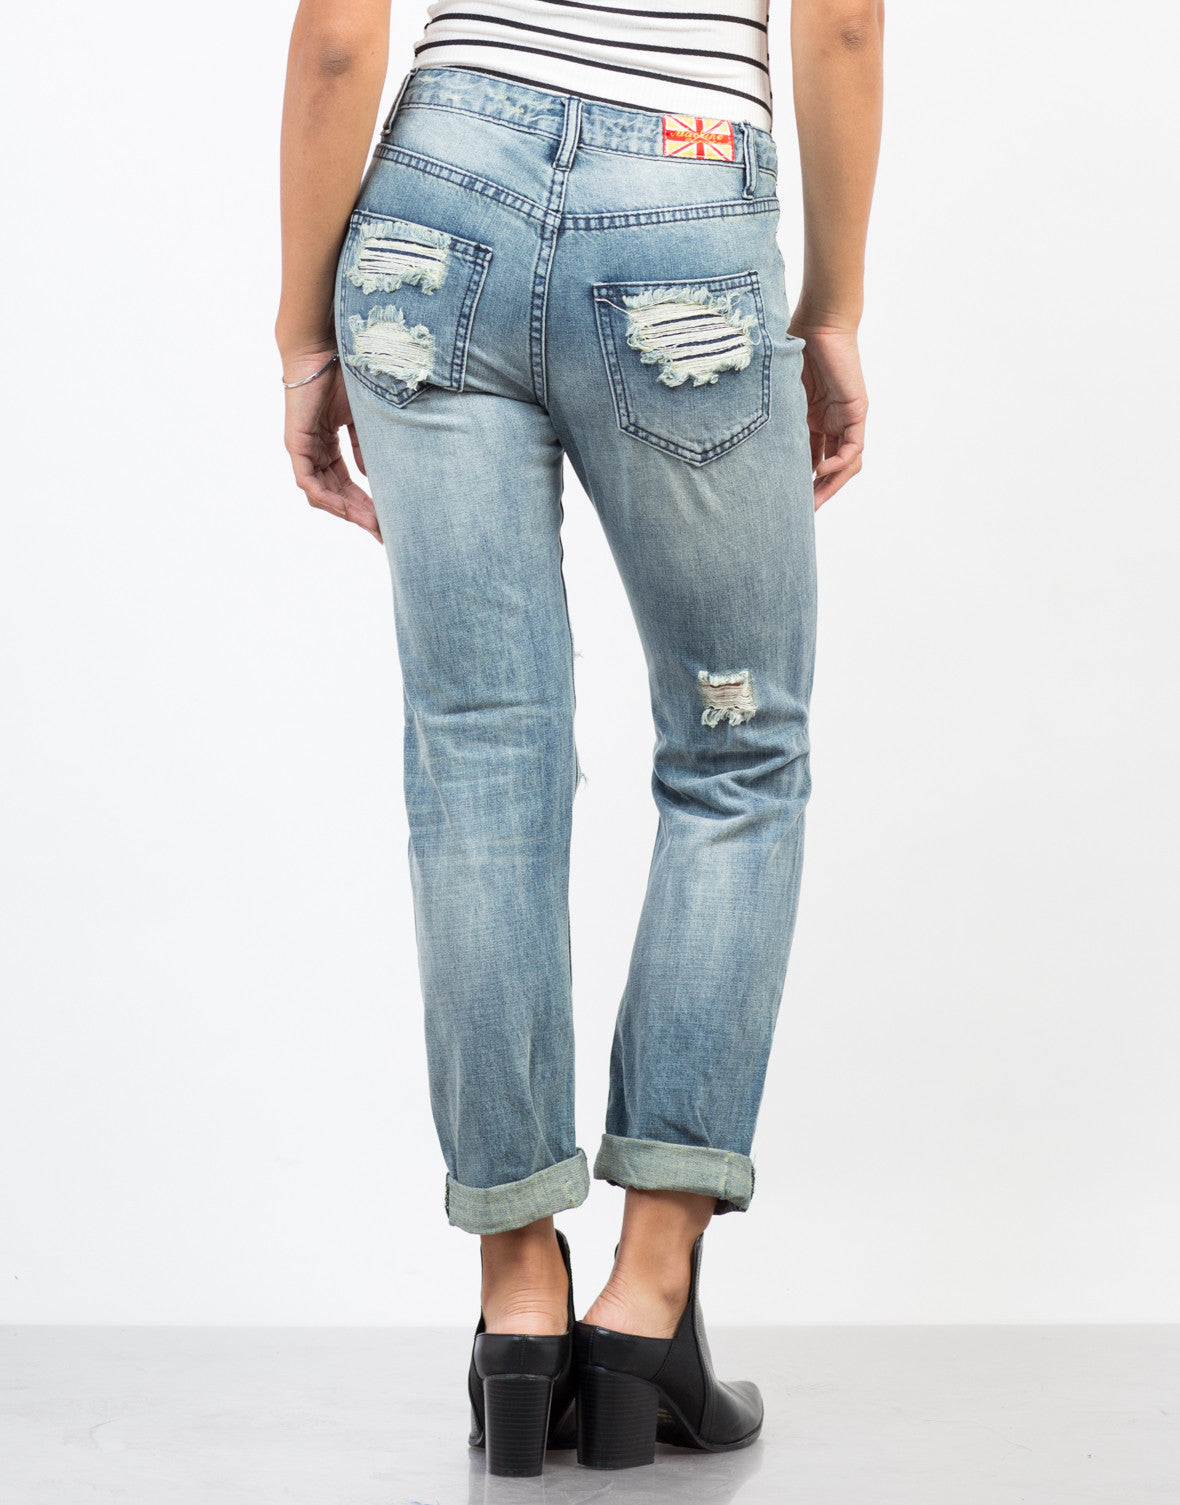 Back View of Feelin' Torn Up Boyfriend Jeans